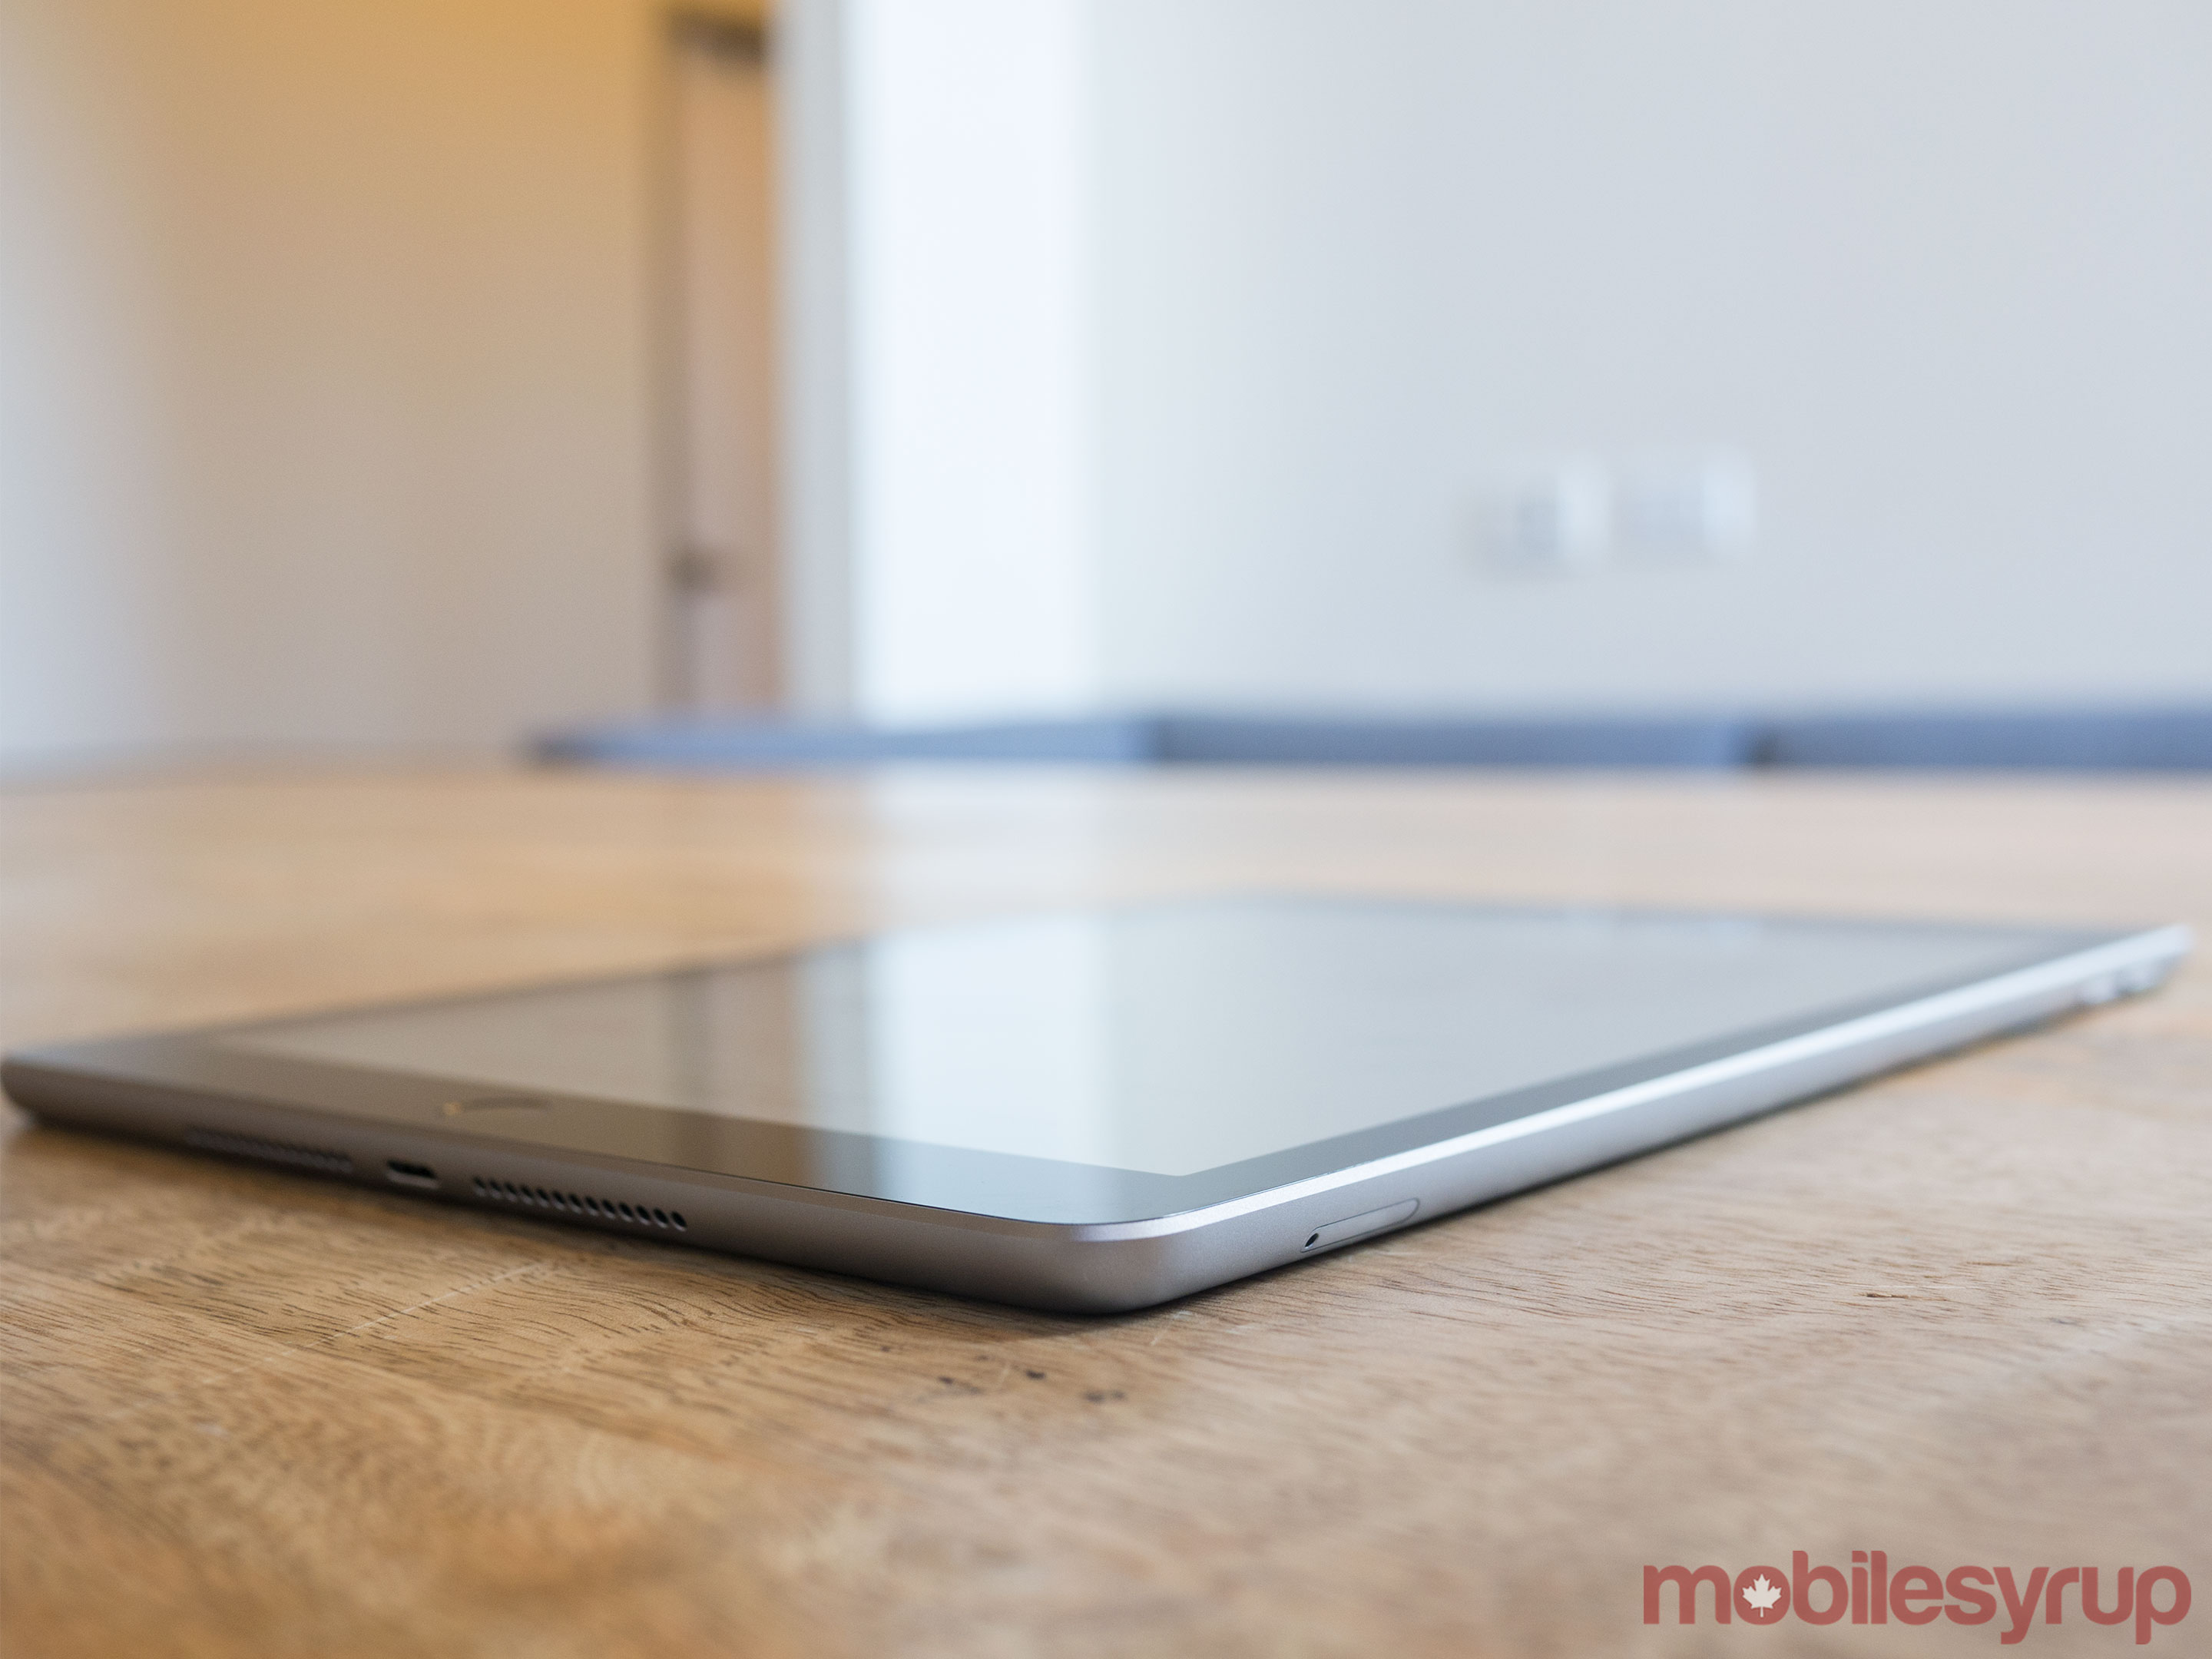 9.7-inch iPad side view on table